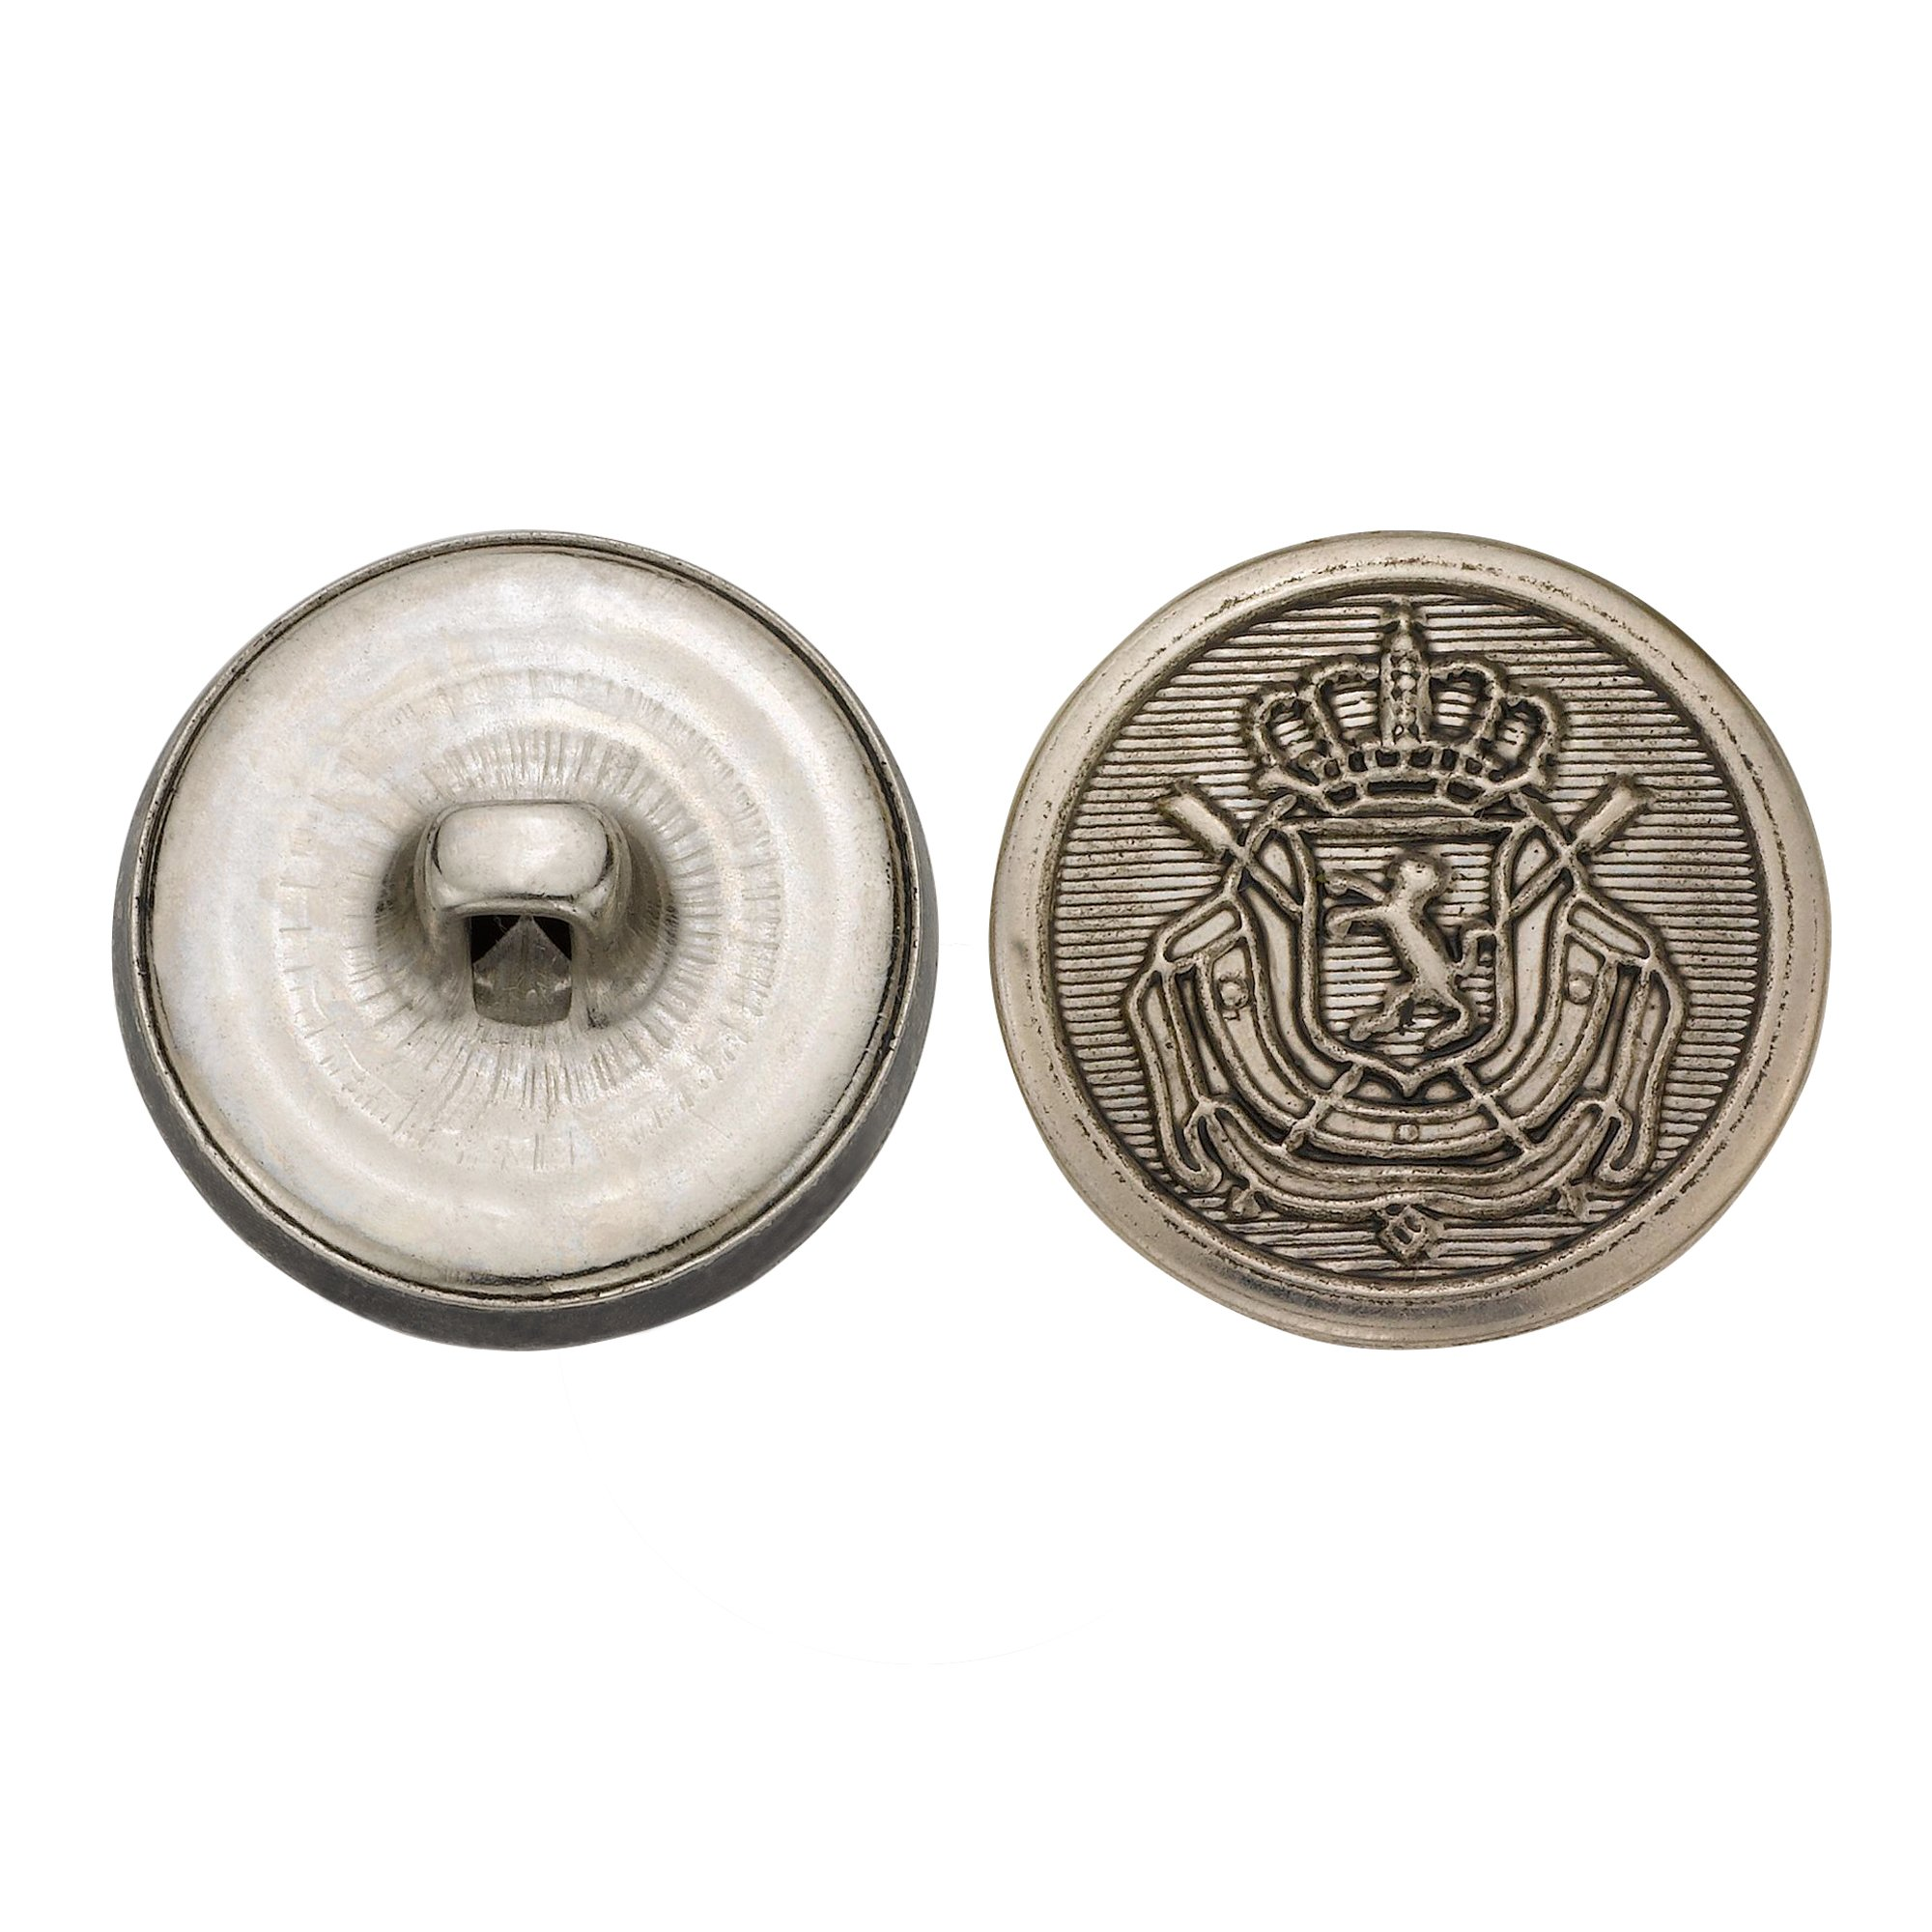 C&C Metal Products 5289 Royal Crest Metal Button, Size 33 Ligne, Antique Nickel, 36-Pack